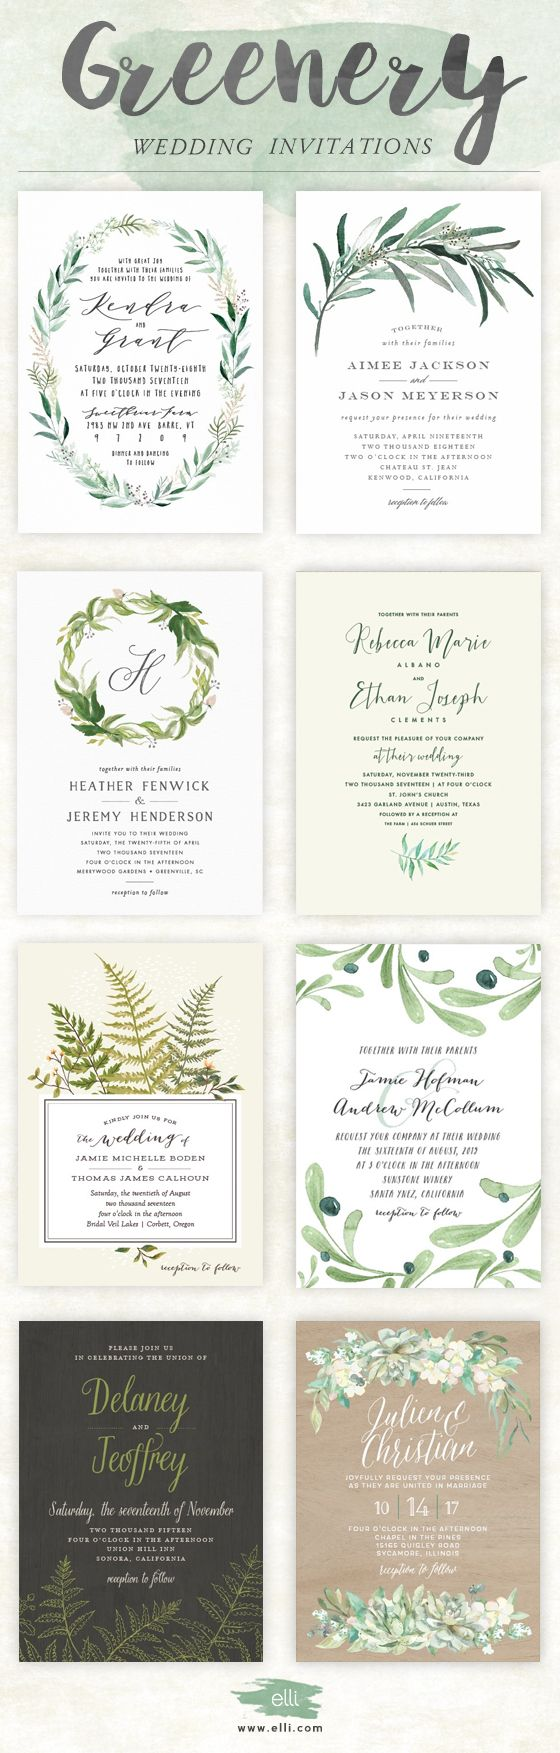 free wedding invitation templates country theme%0A Trending for       greenery wedding invitations from Elli com